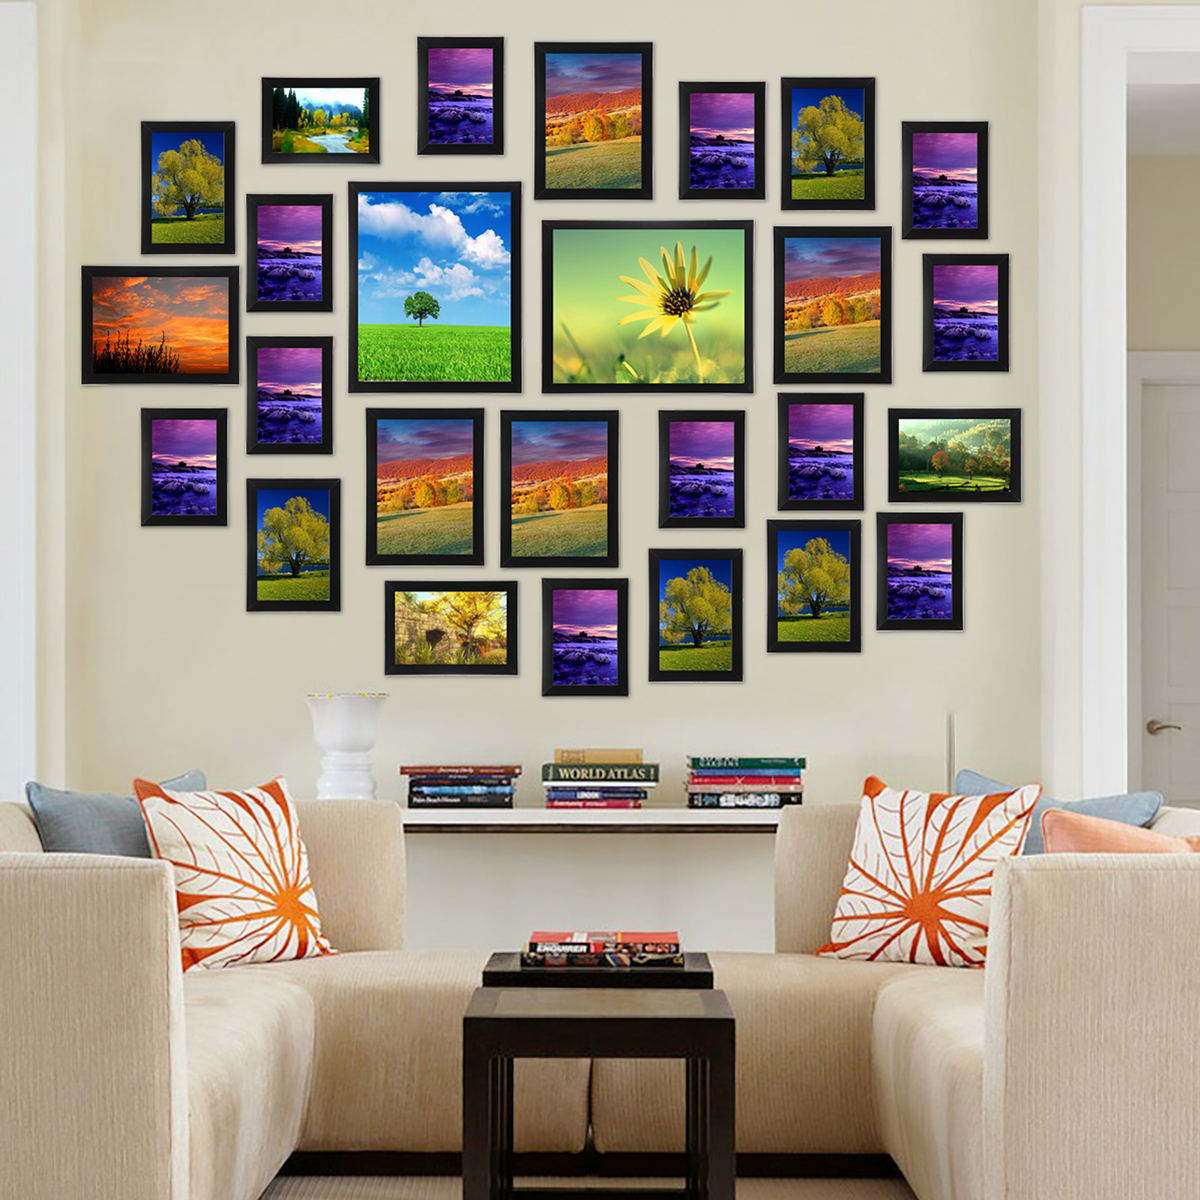 Multi photo frames set home room office decor picture